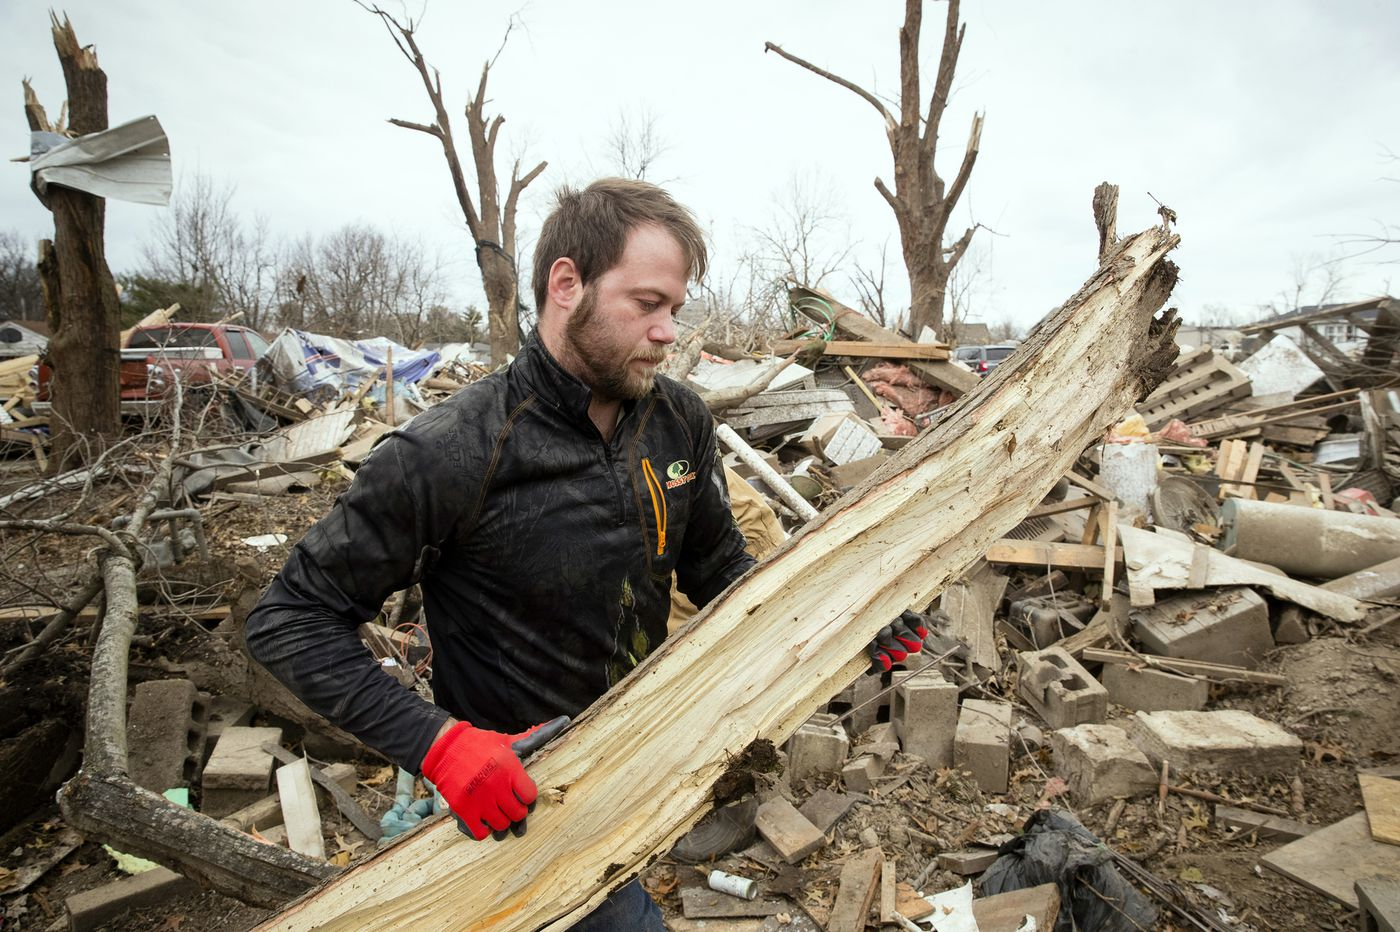 Rare December tornadoes reported in central US, killing 1